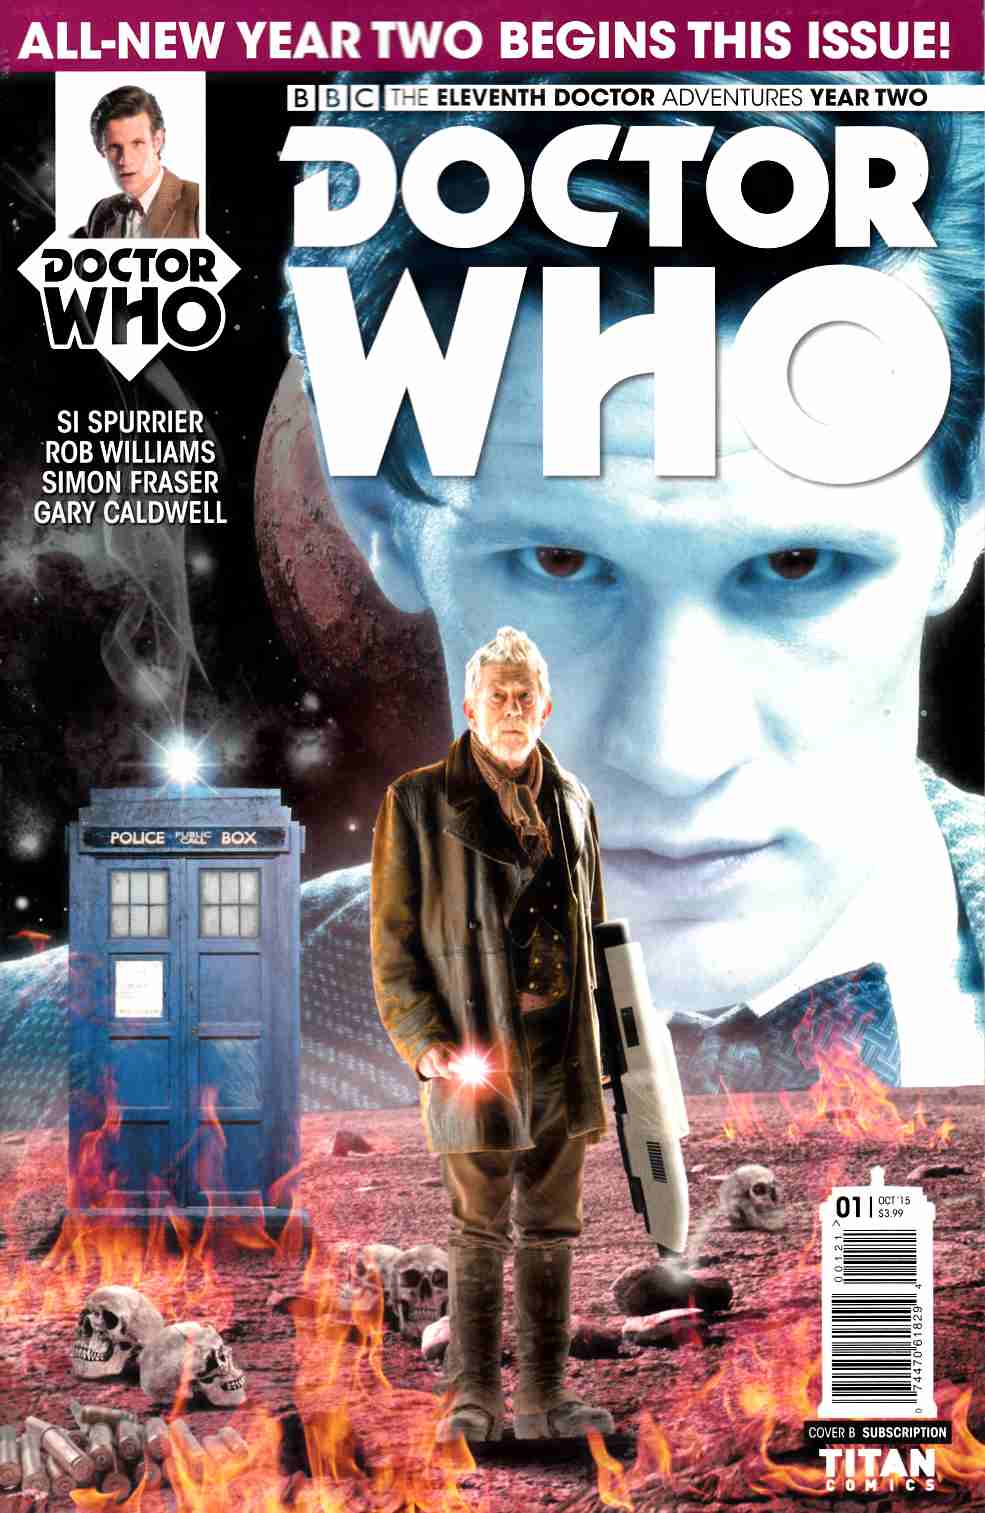 Doctor Who 11th Doctor Year 2 #1 Subscription Photo Cover [Titan Comic]